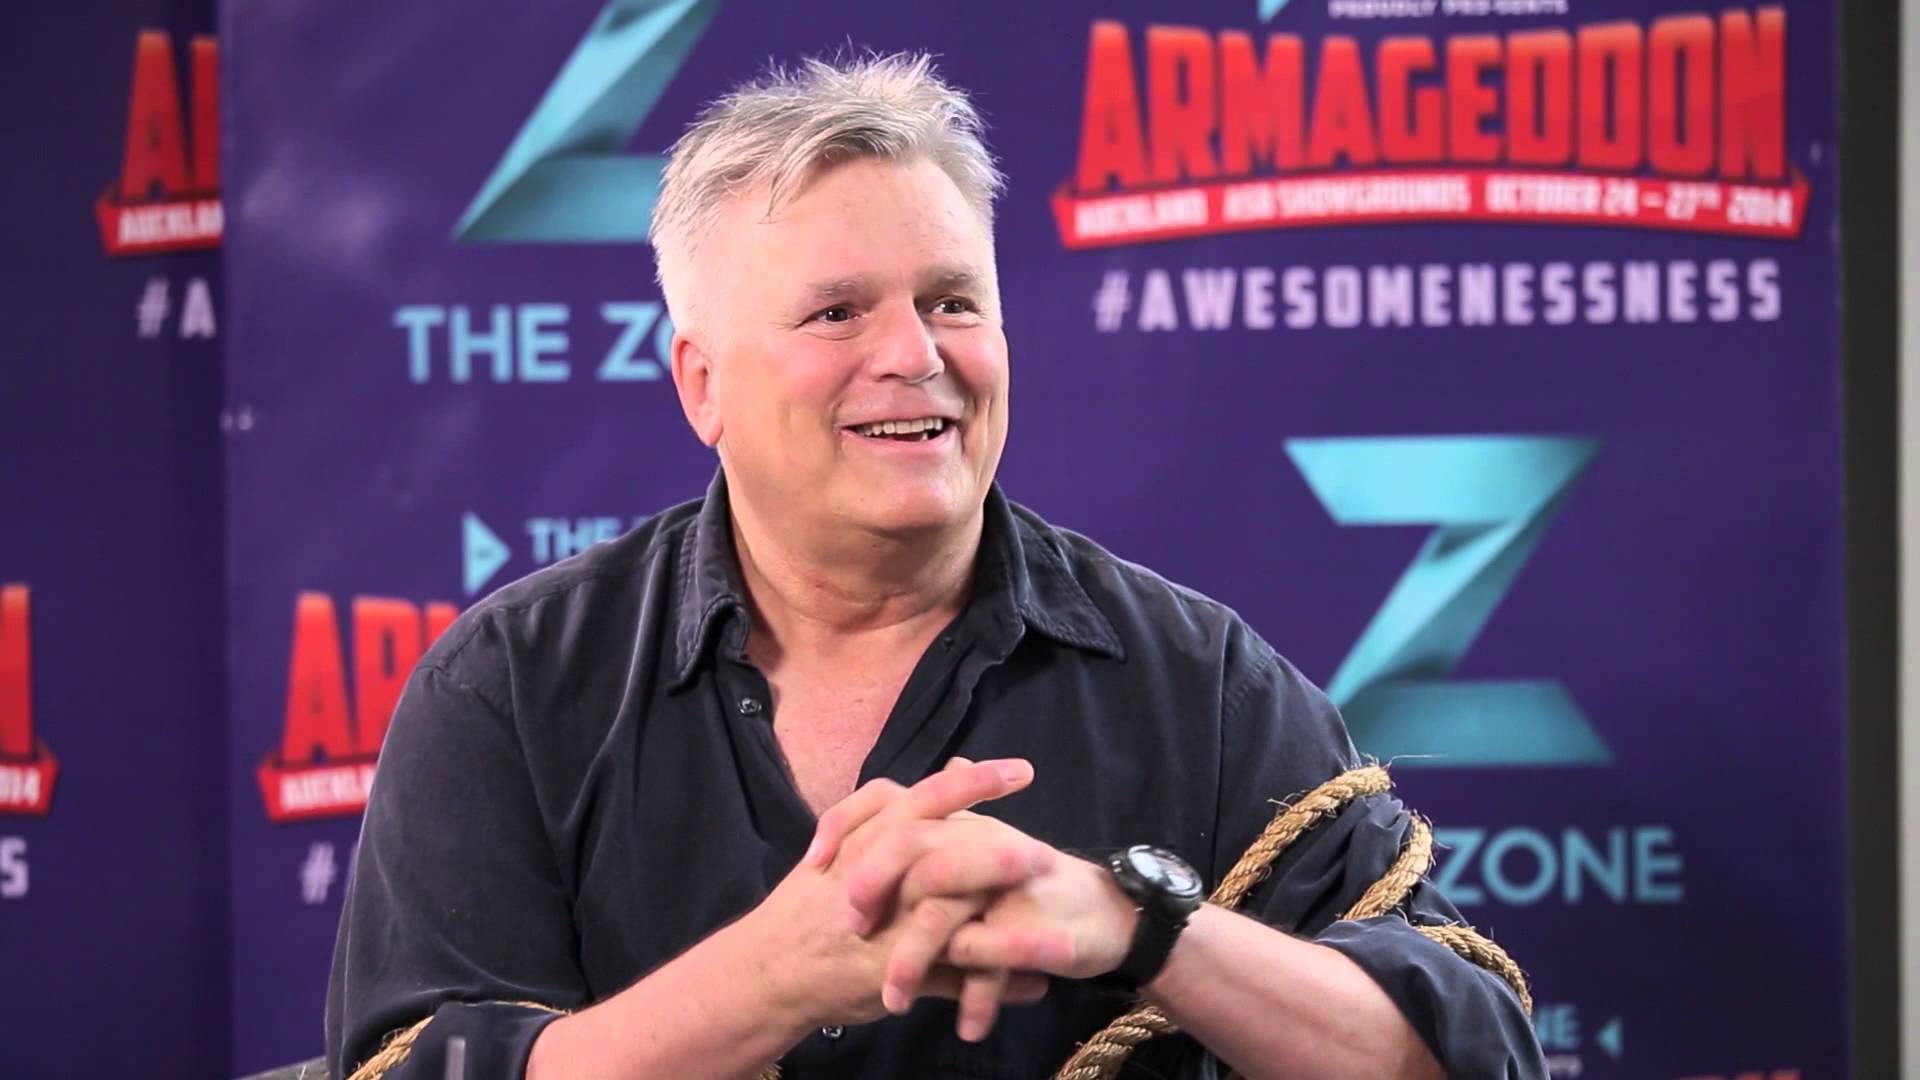 Richard Dean Anderson HQ wallpapers